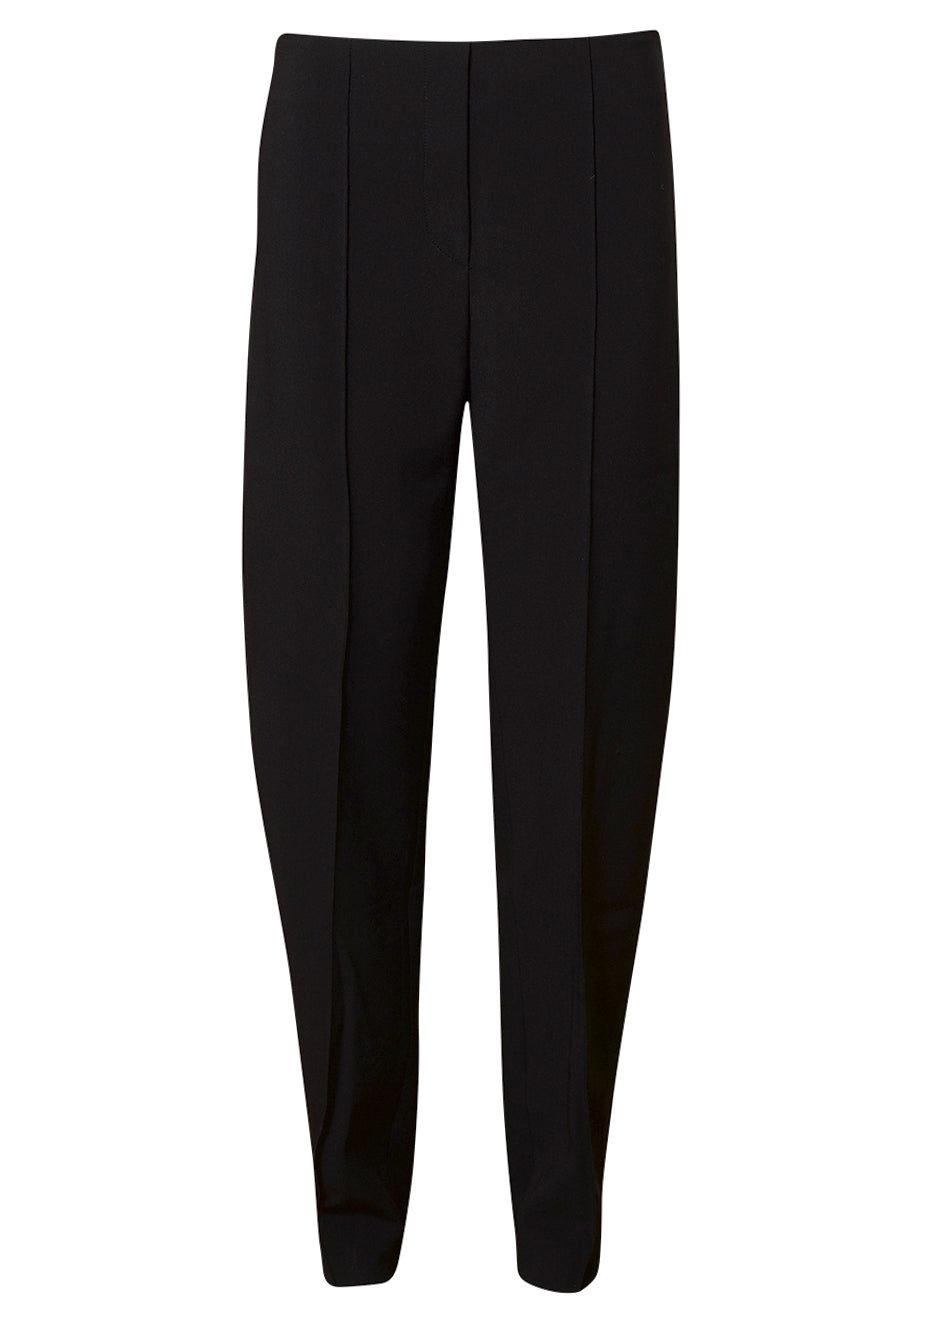 Morae Tailored Pants Black